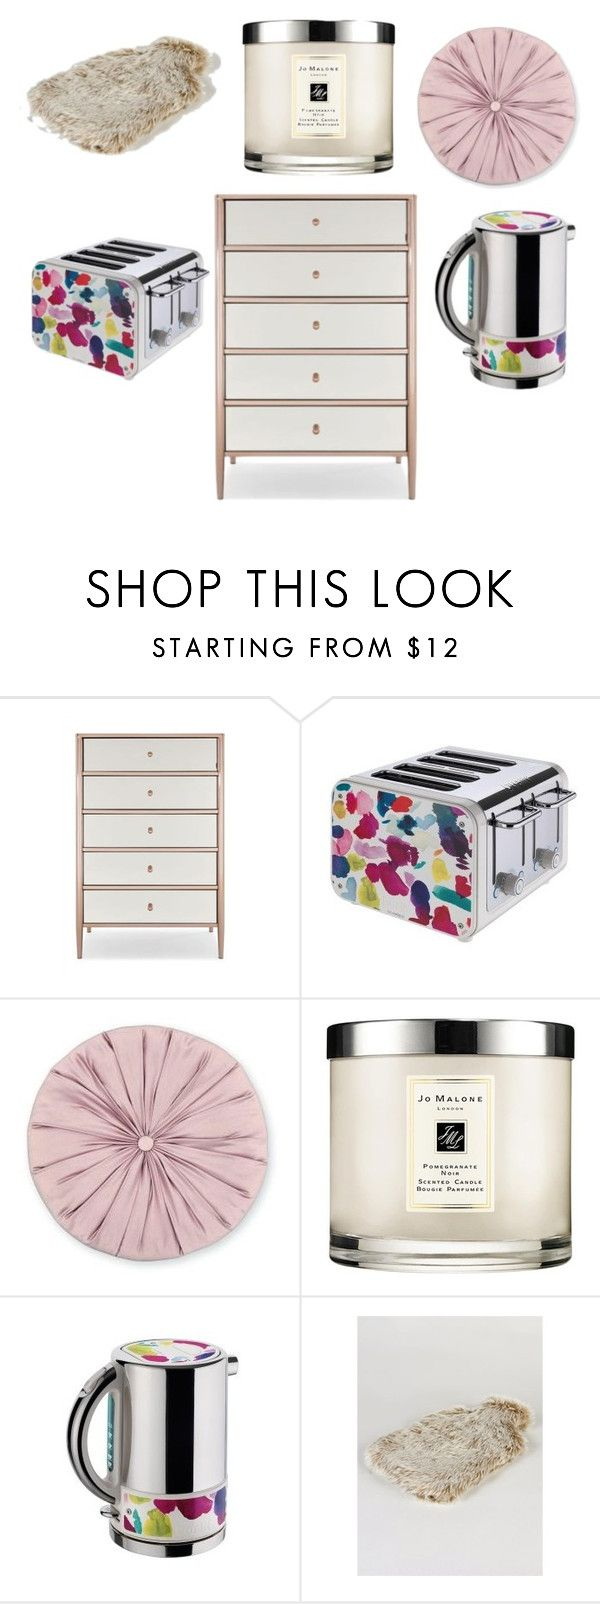 October Homeware Wishlist by mintlobster on Polyvore featuring interior, interiors, interior design, home, home decor, interior decorating, Dualit and Jo Malone